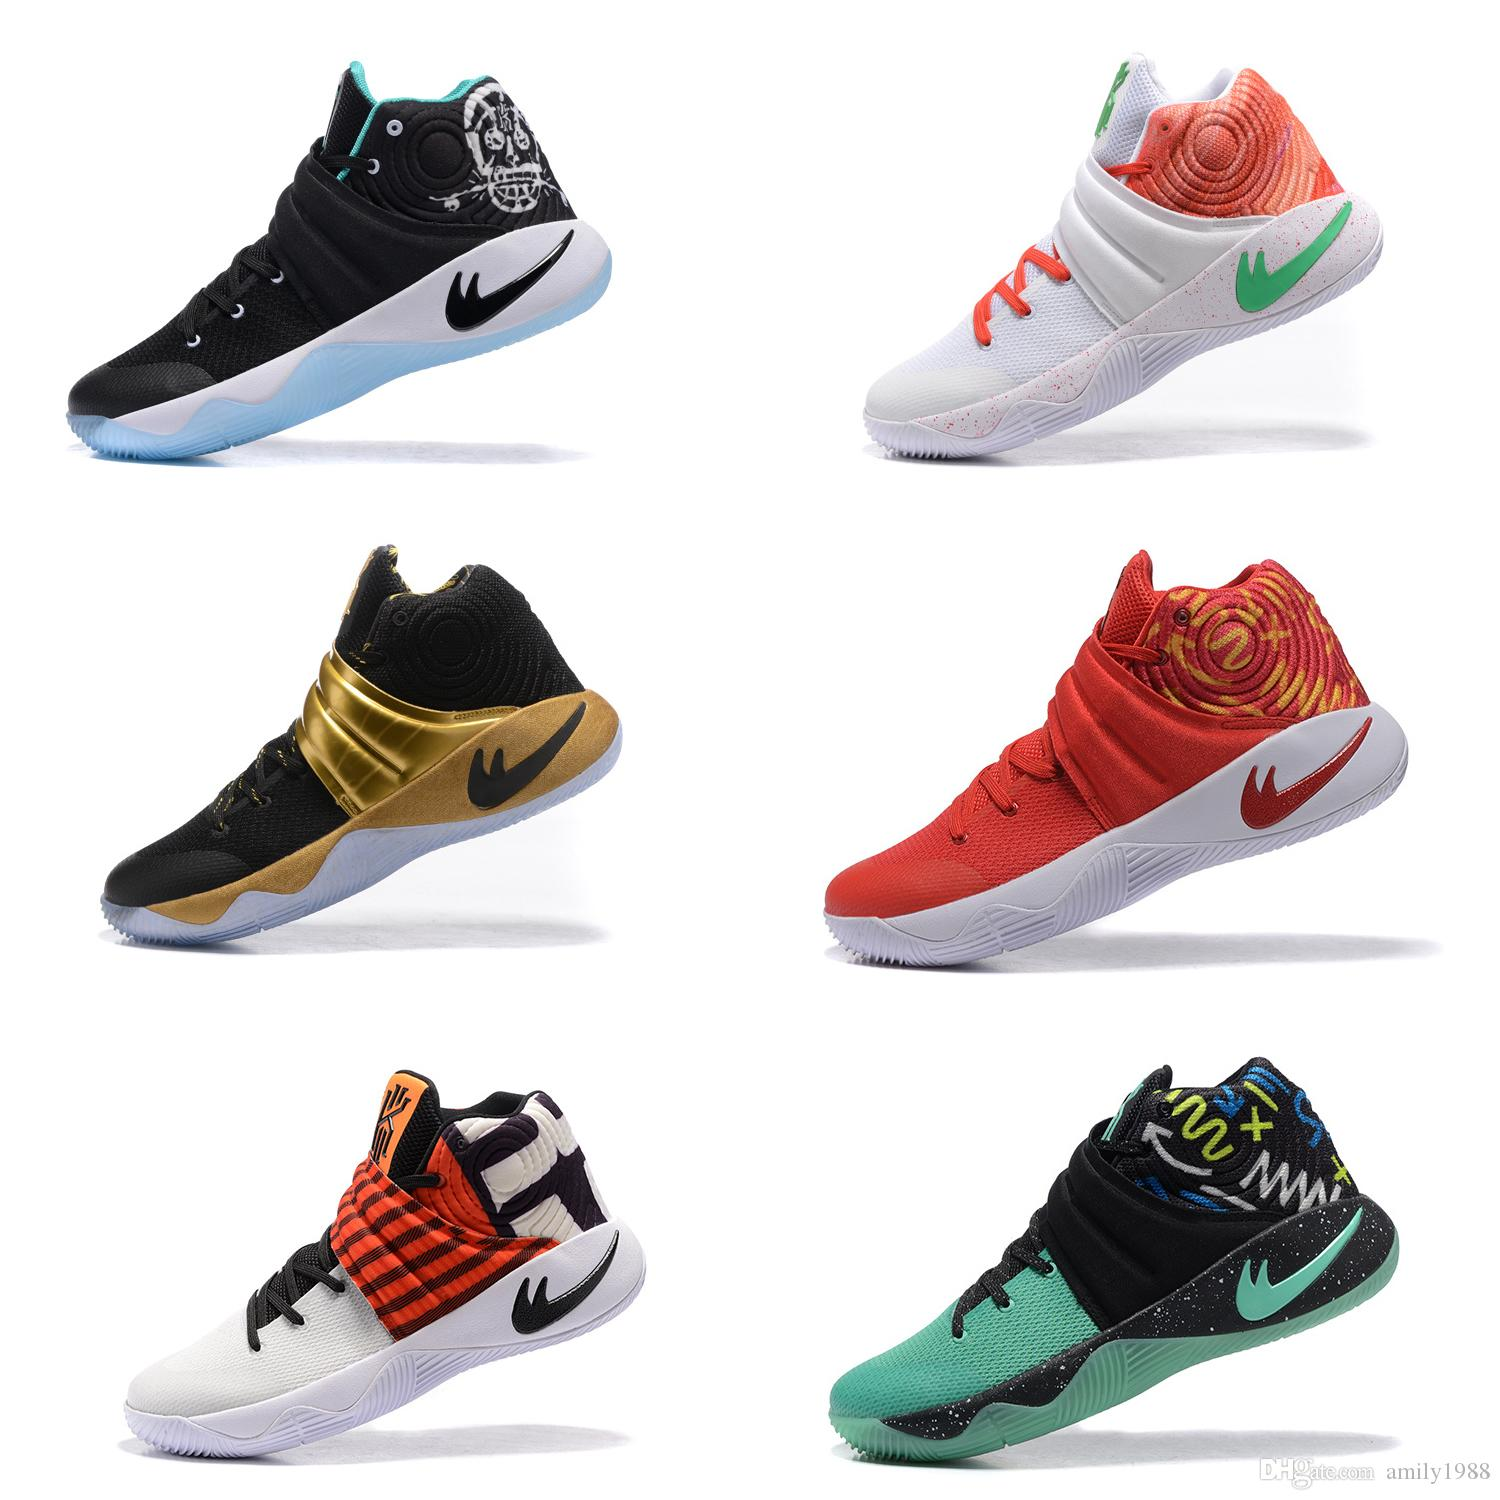 kyrie irving best shoes Shop Clothing